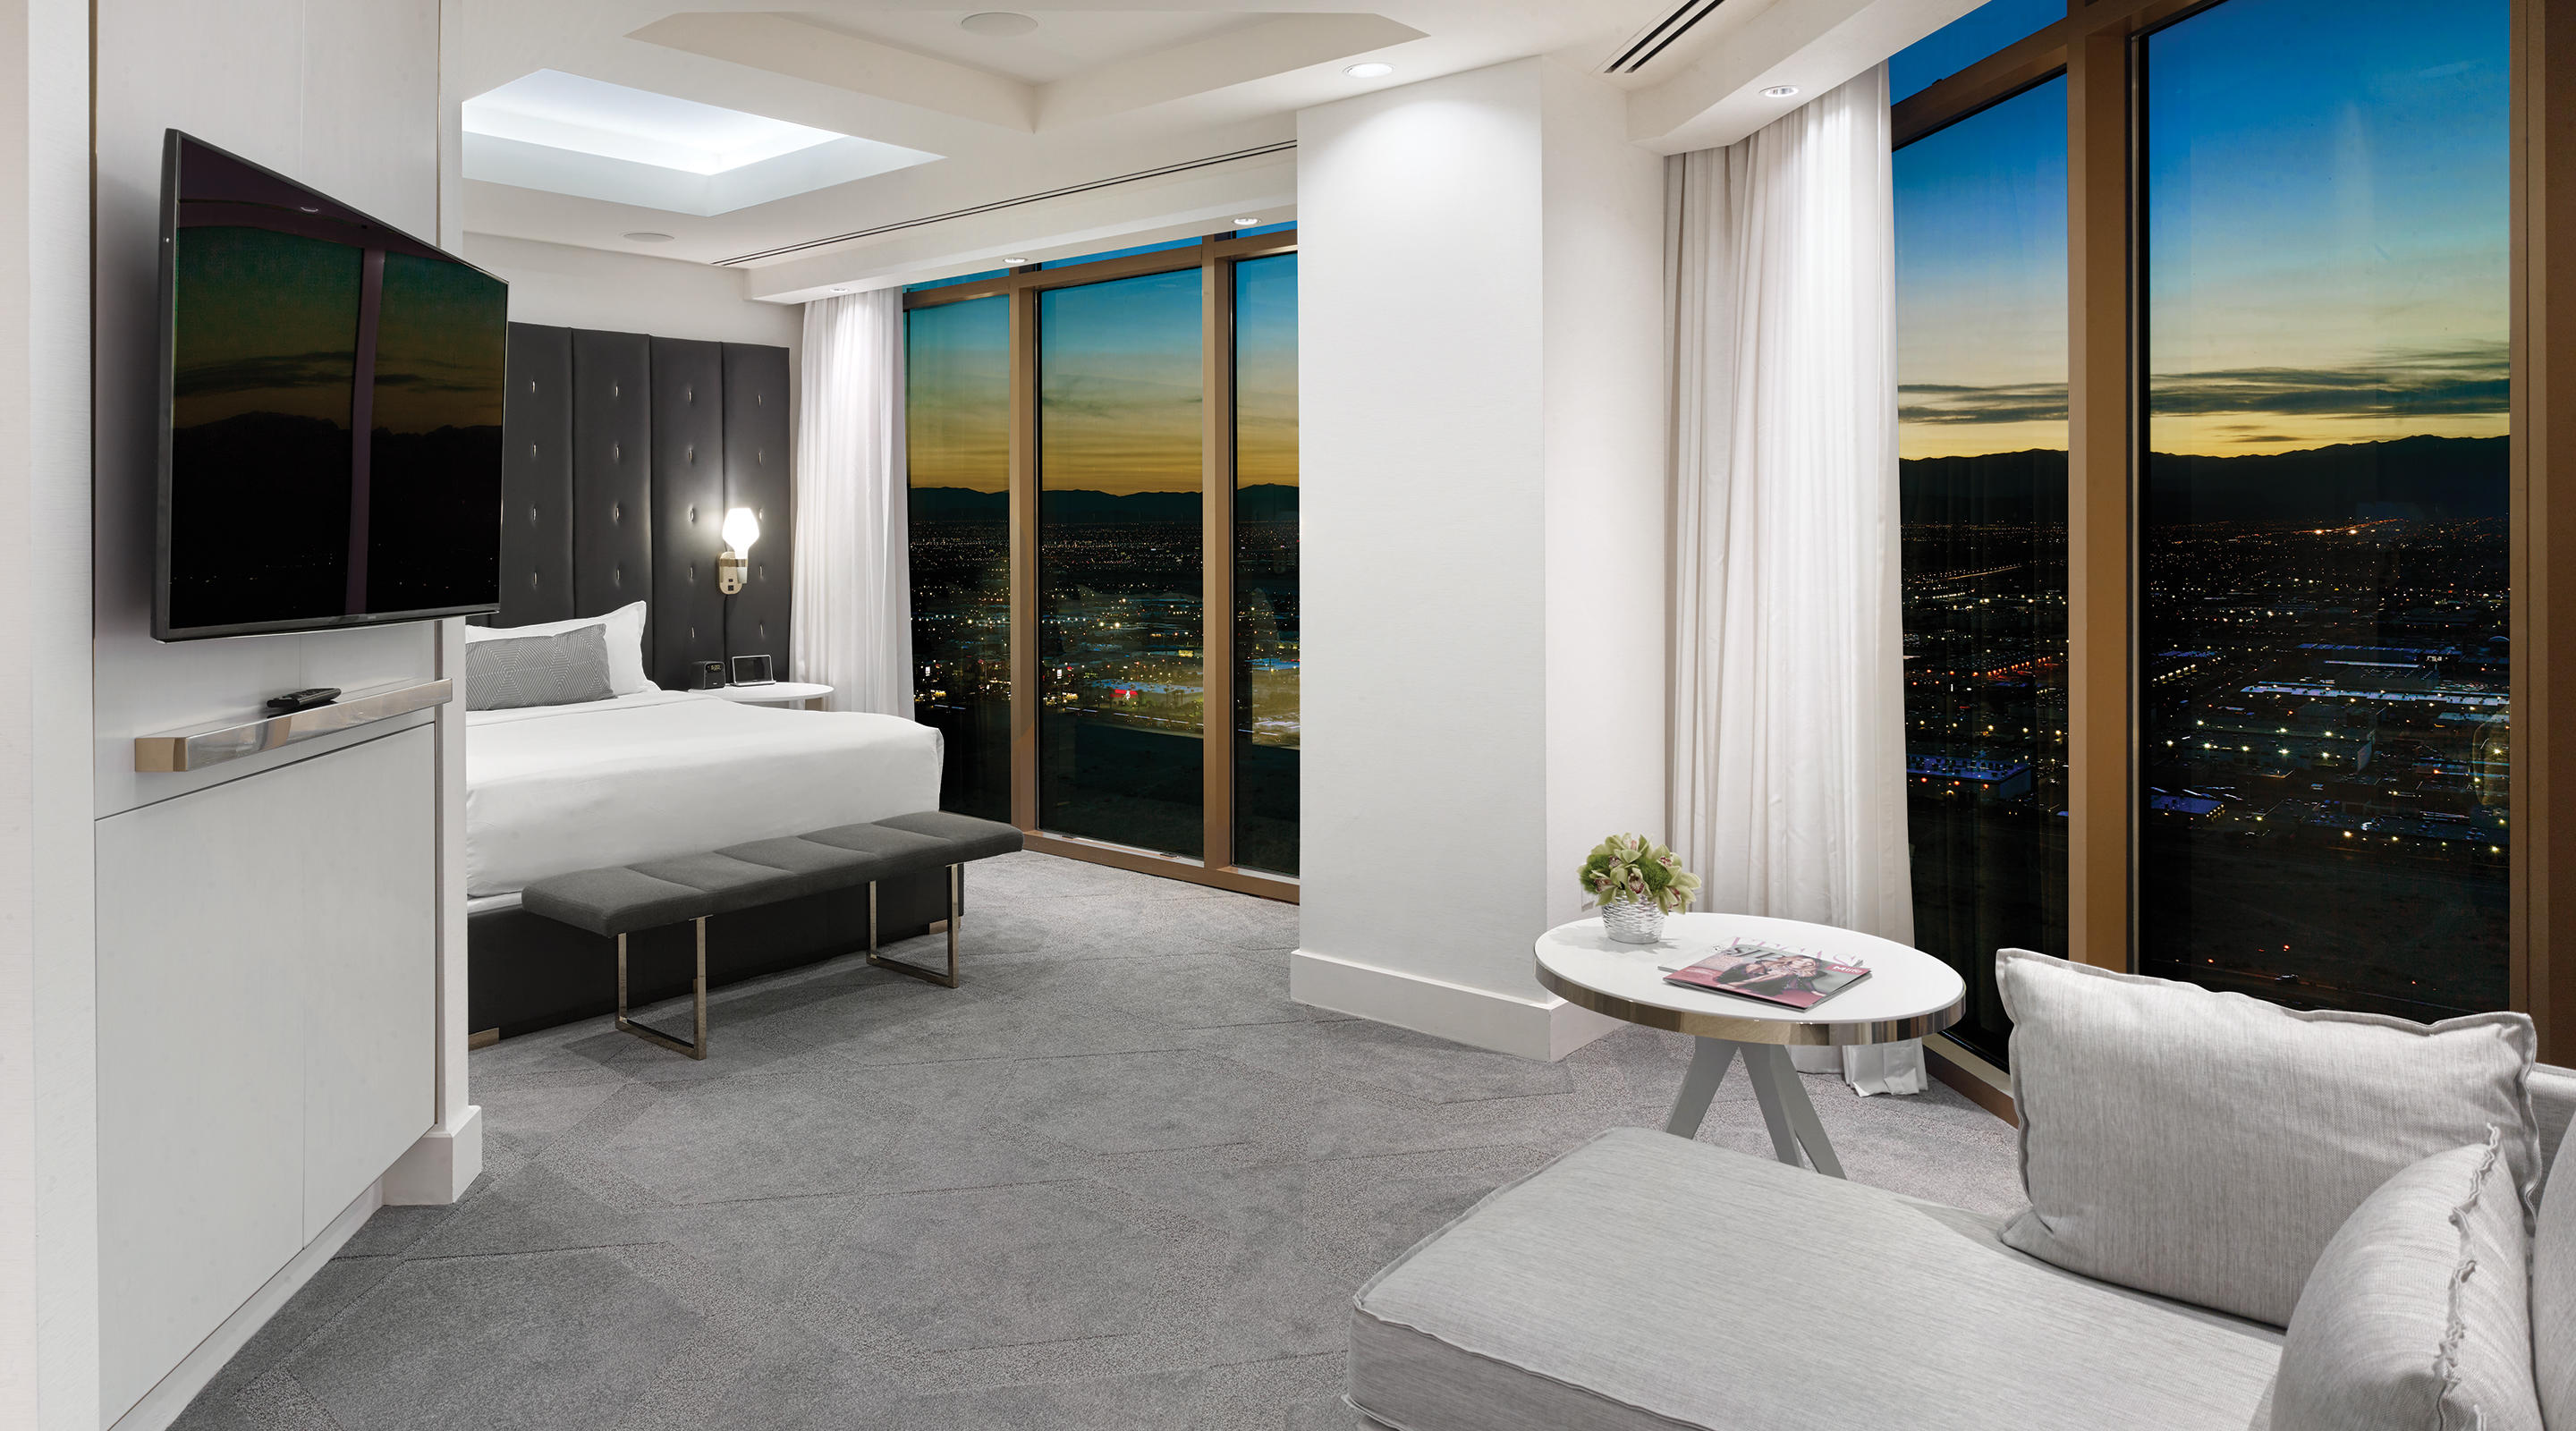 Delano Las Vegas Penthouse Panoramic View Bedroom